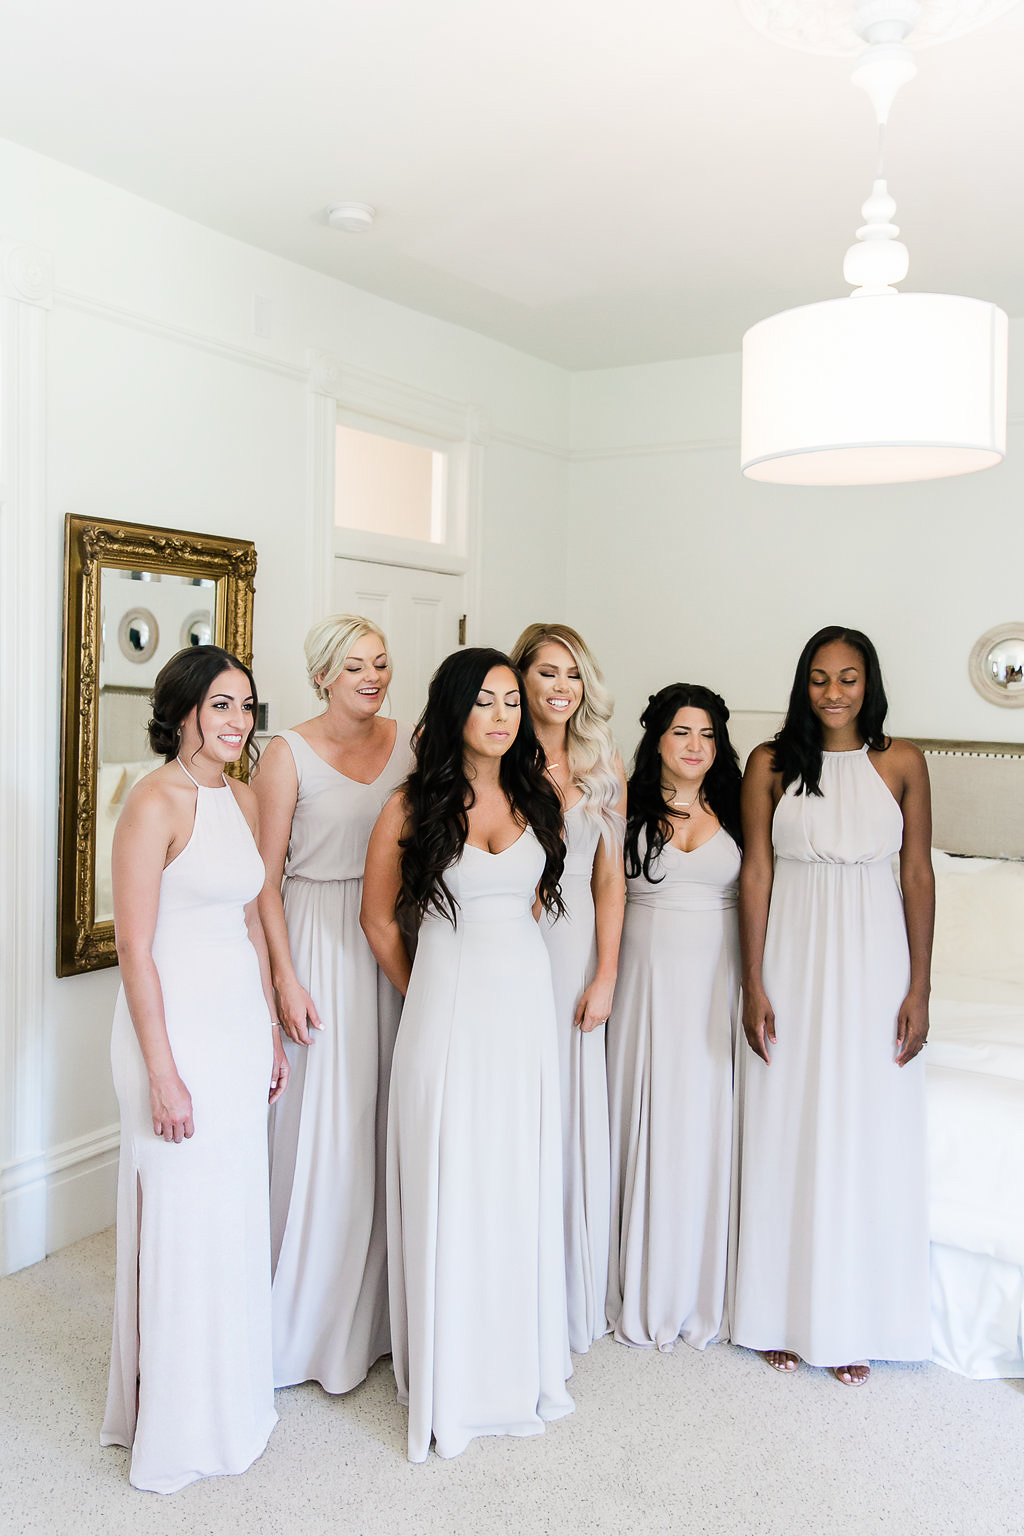 Park Winters Wedding | Bridesmaids First Look | Nude Bridesmaids Dress